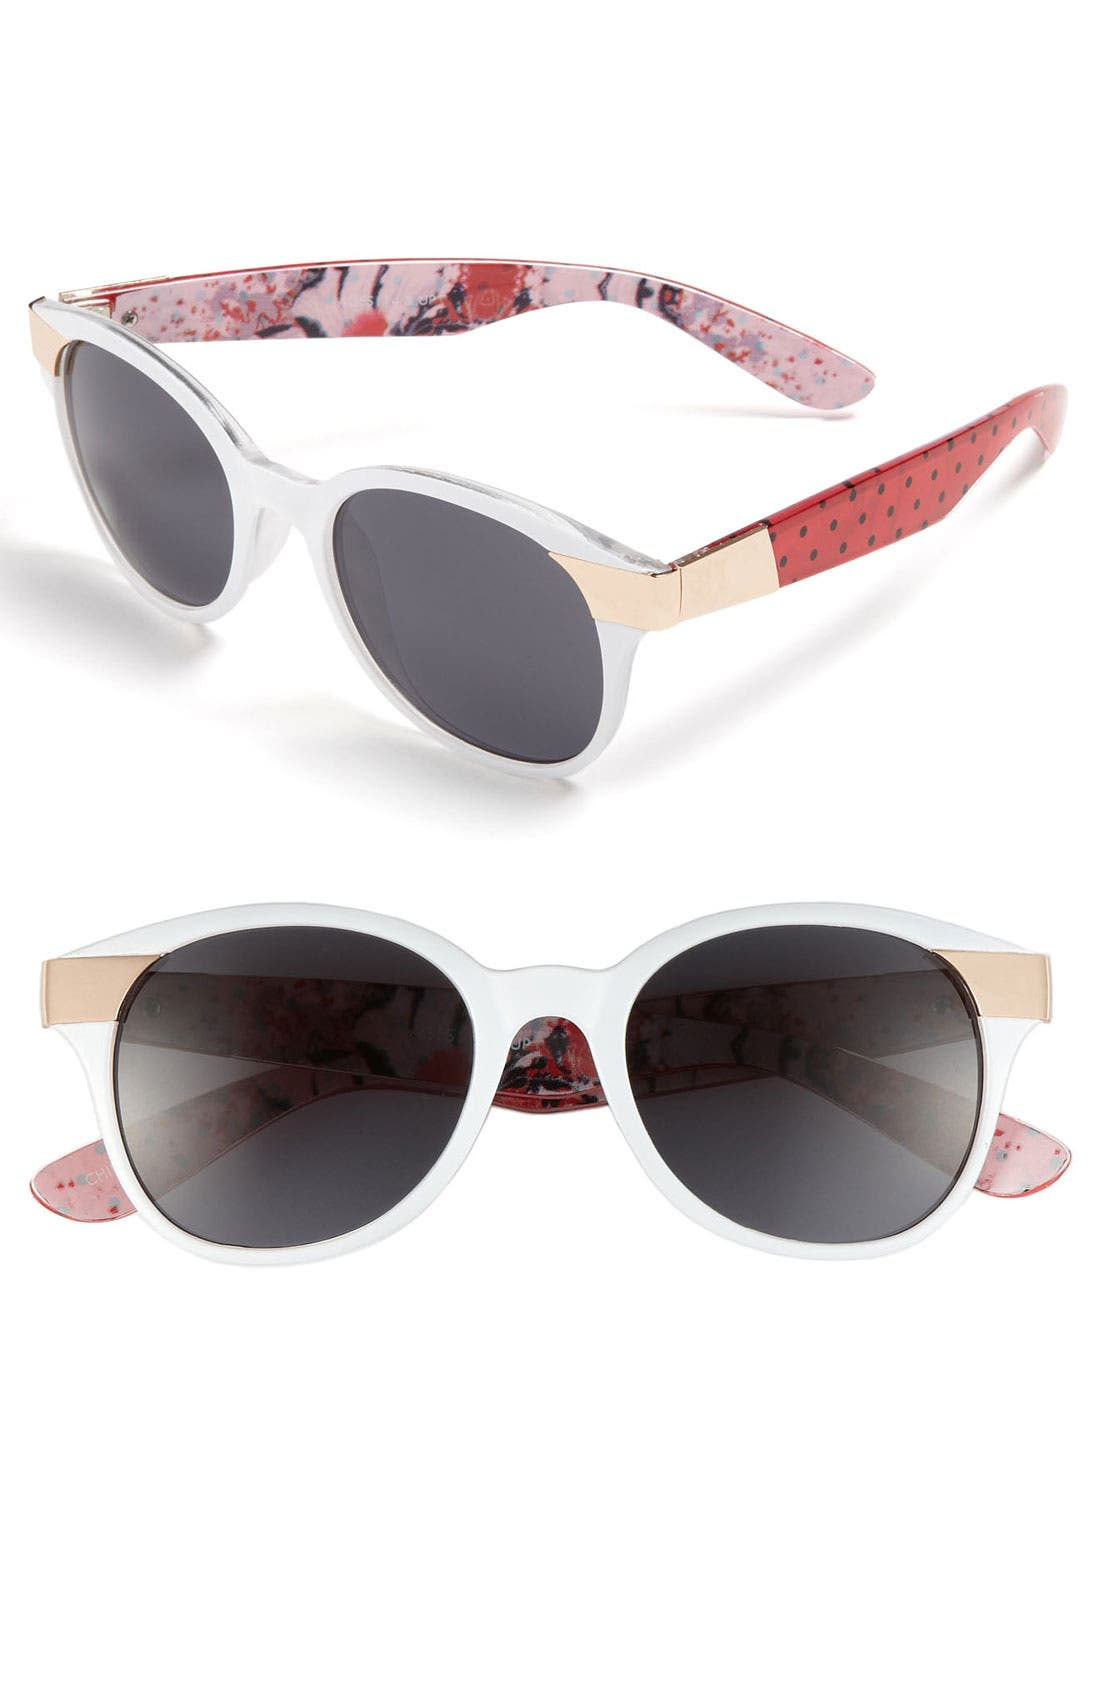 Alternate Image 1 Selected - FE NY 'Cadillac Ranch' Sunglasses